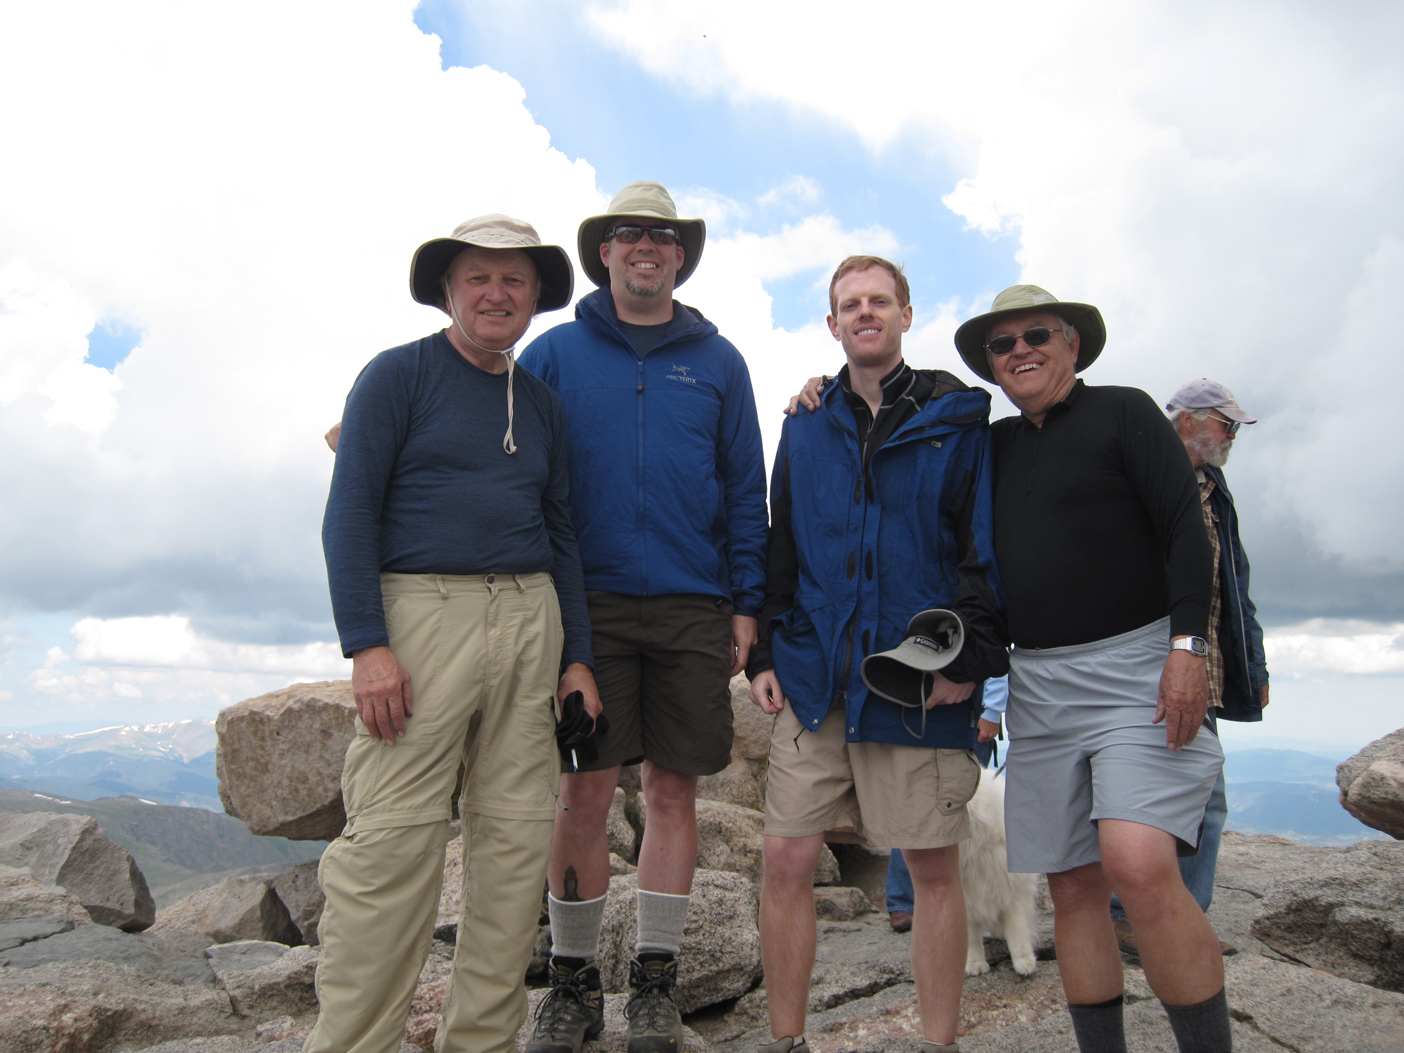 Jerry McDowell, David McDowell, John McDowell and Keith McDowell at the summit of Mount Evans at 14,258 ft.